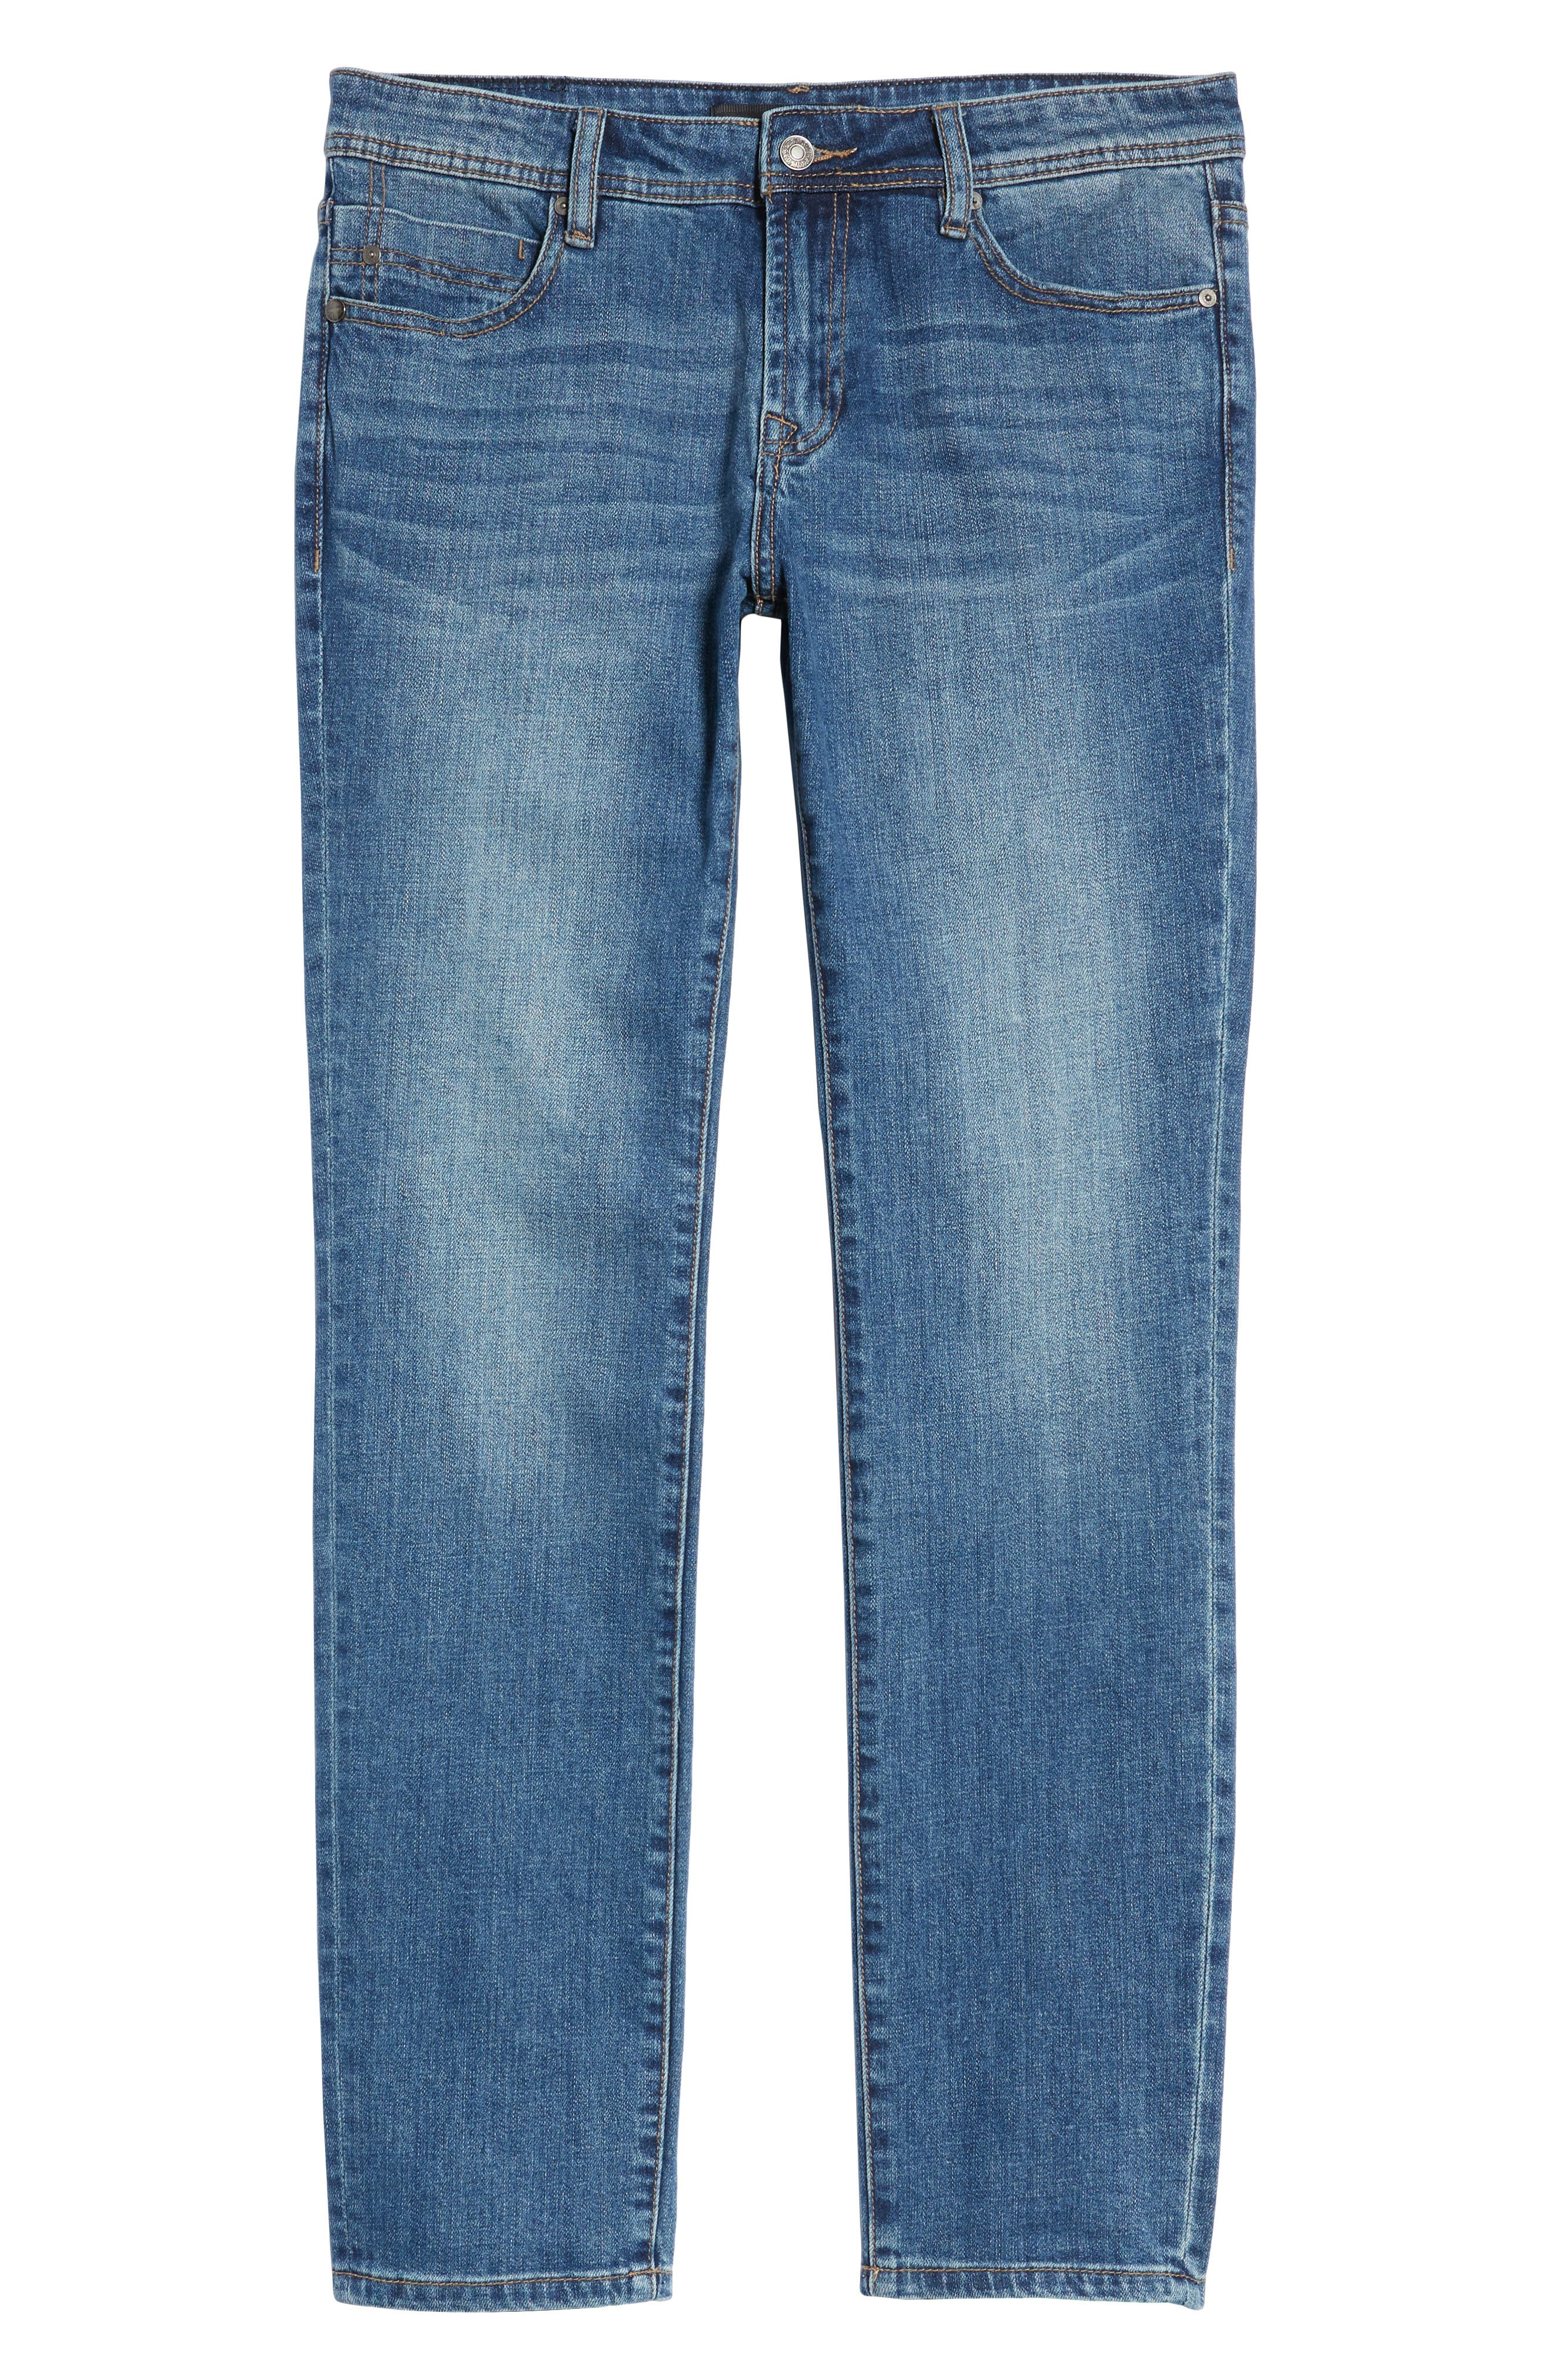 Jeans Co. Bond Skinny Fit Jeans,                             Alternate thumbnail 6, color,                             401